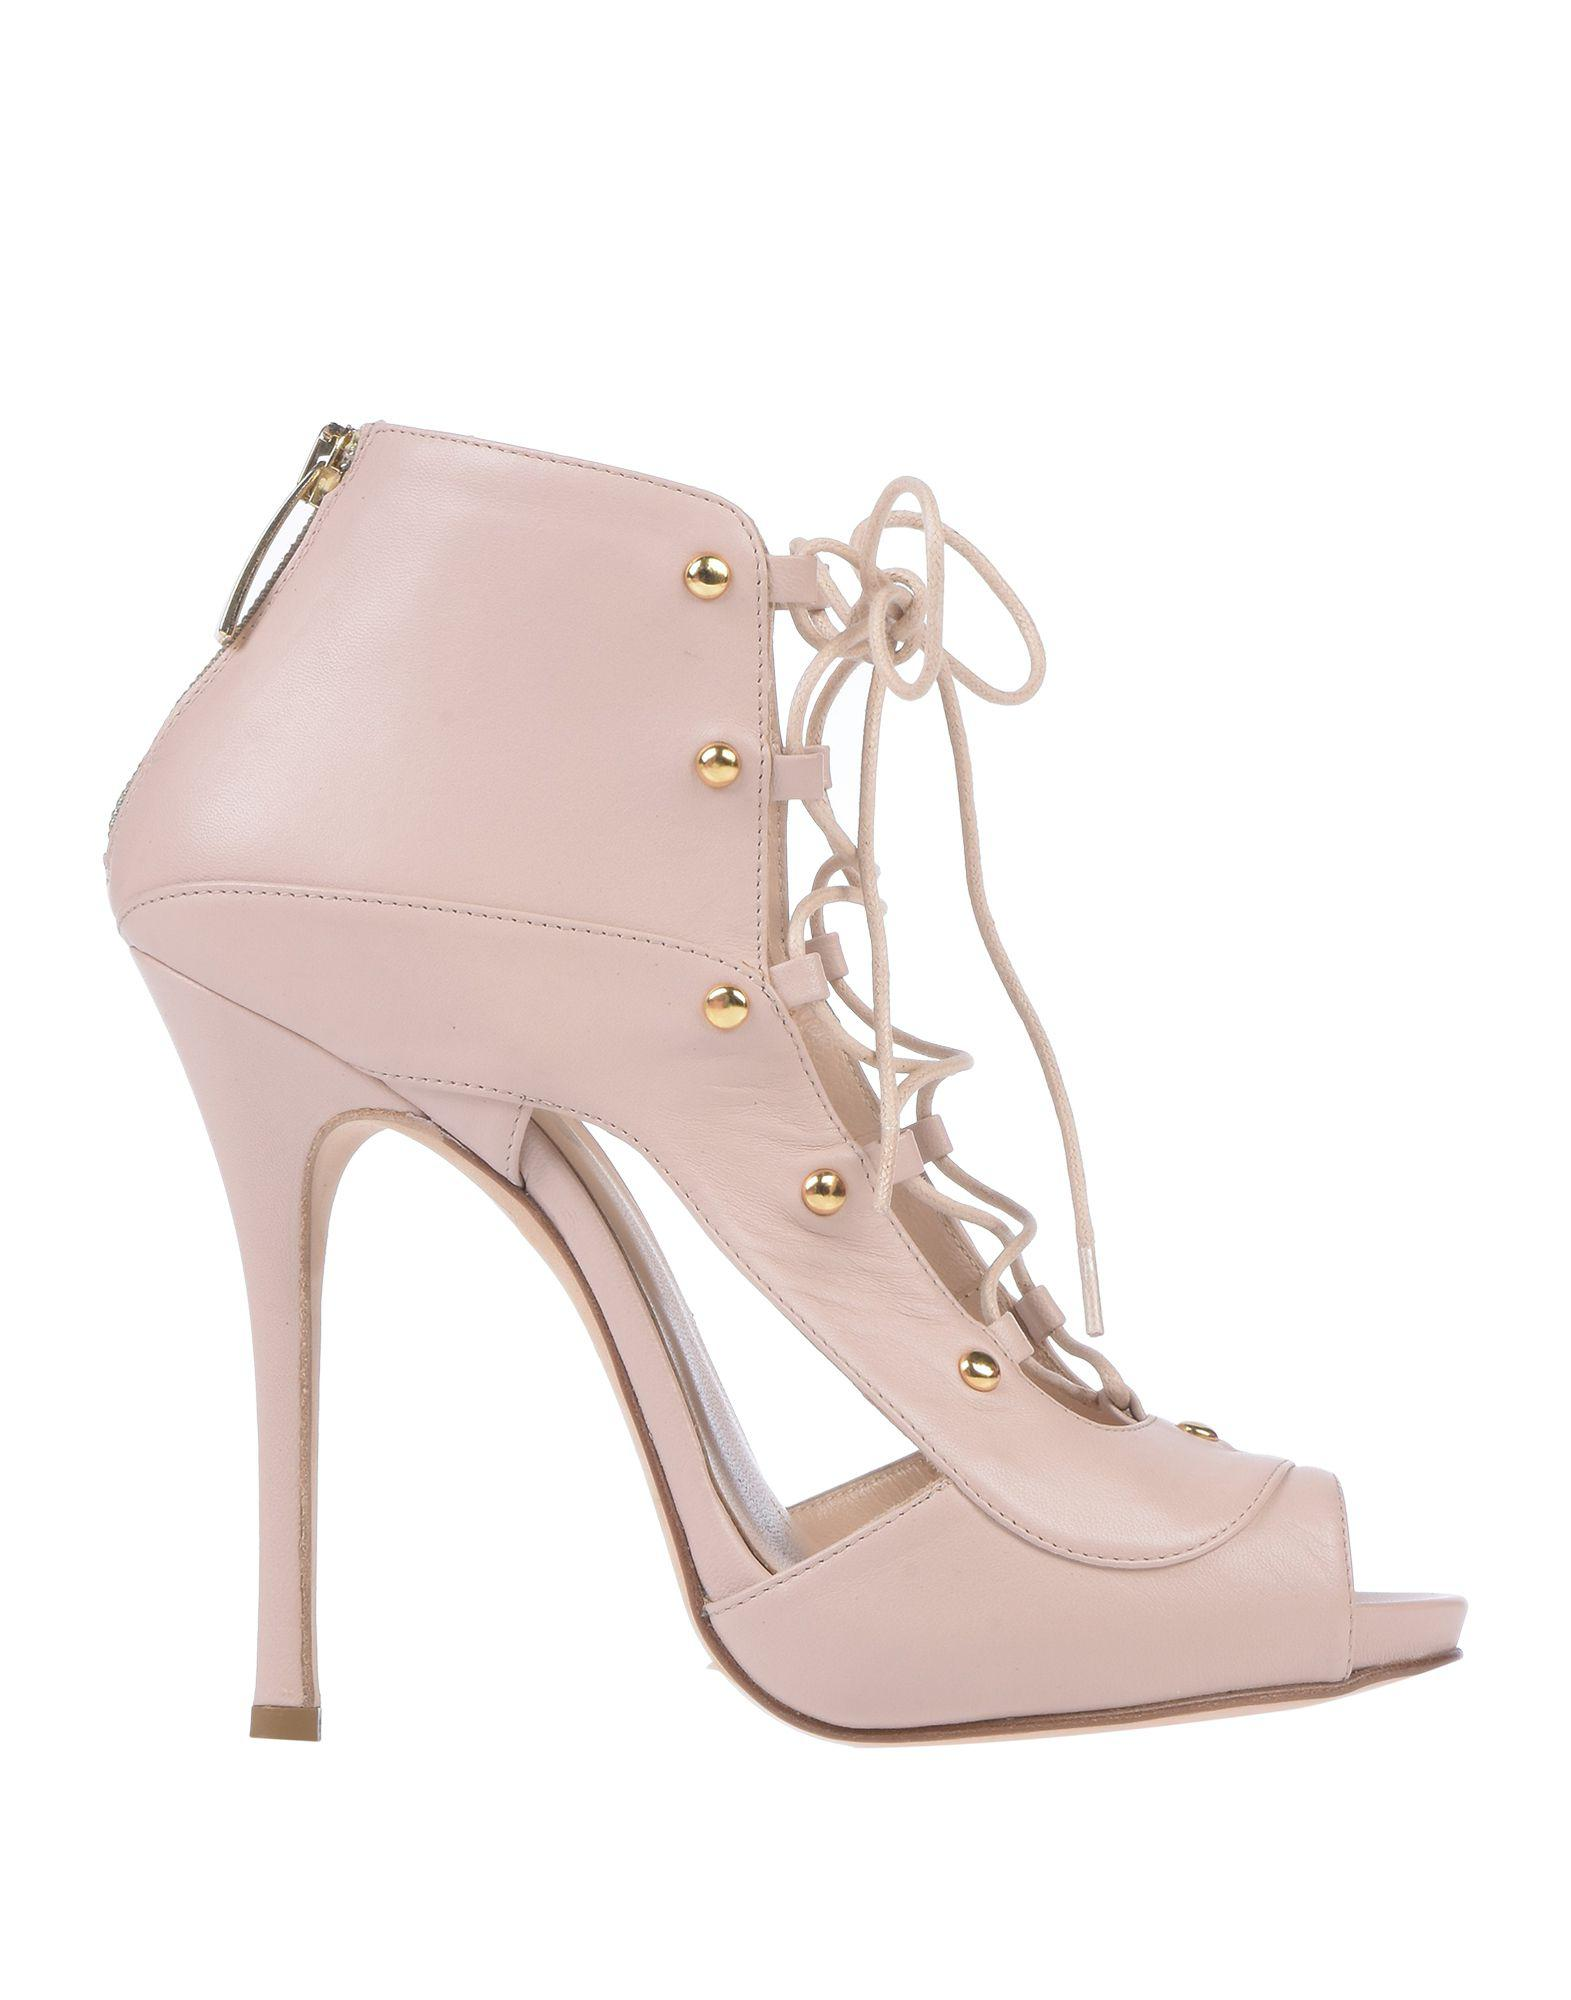 d68104c95e660a Lyst - Wo Milano Sandals in Pink